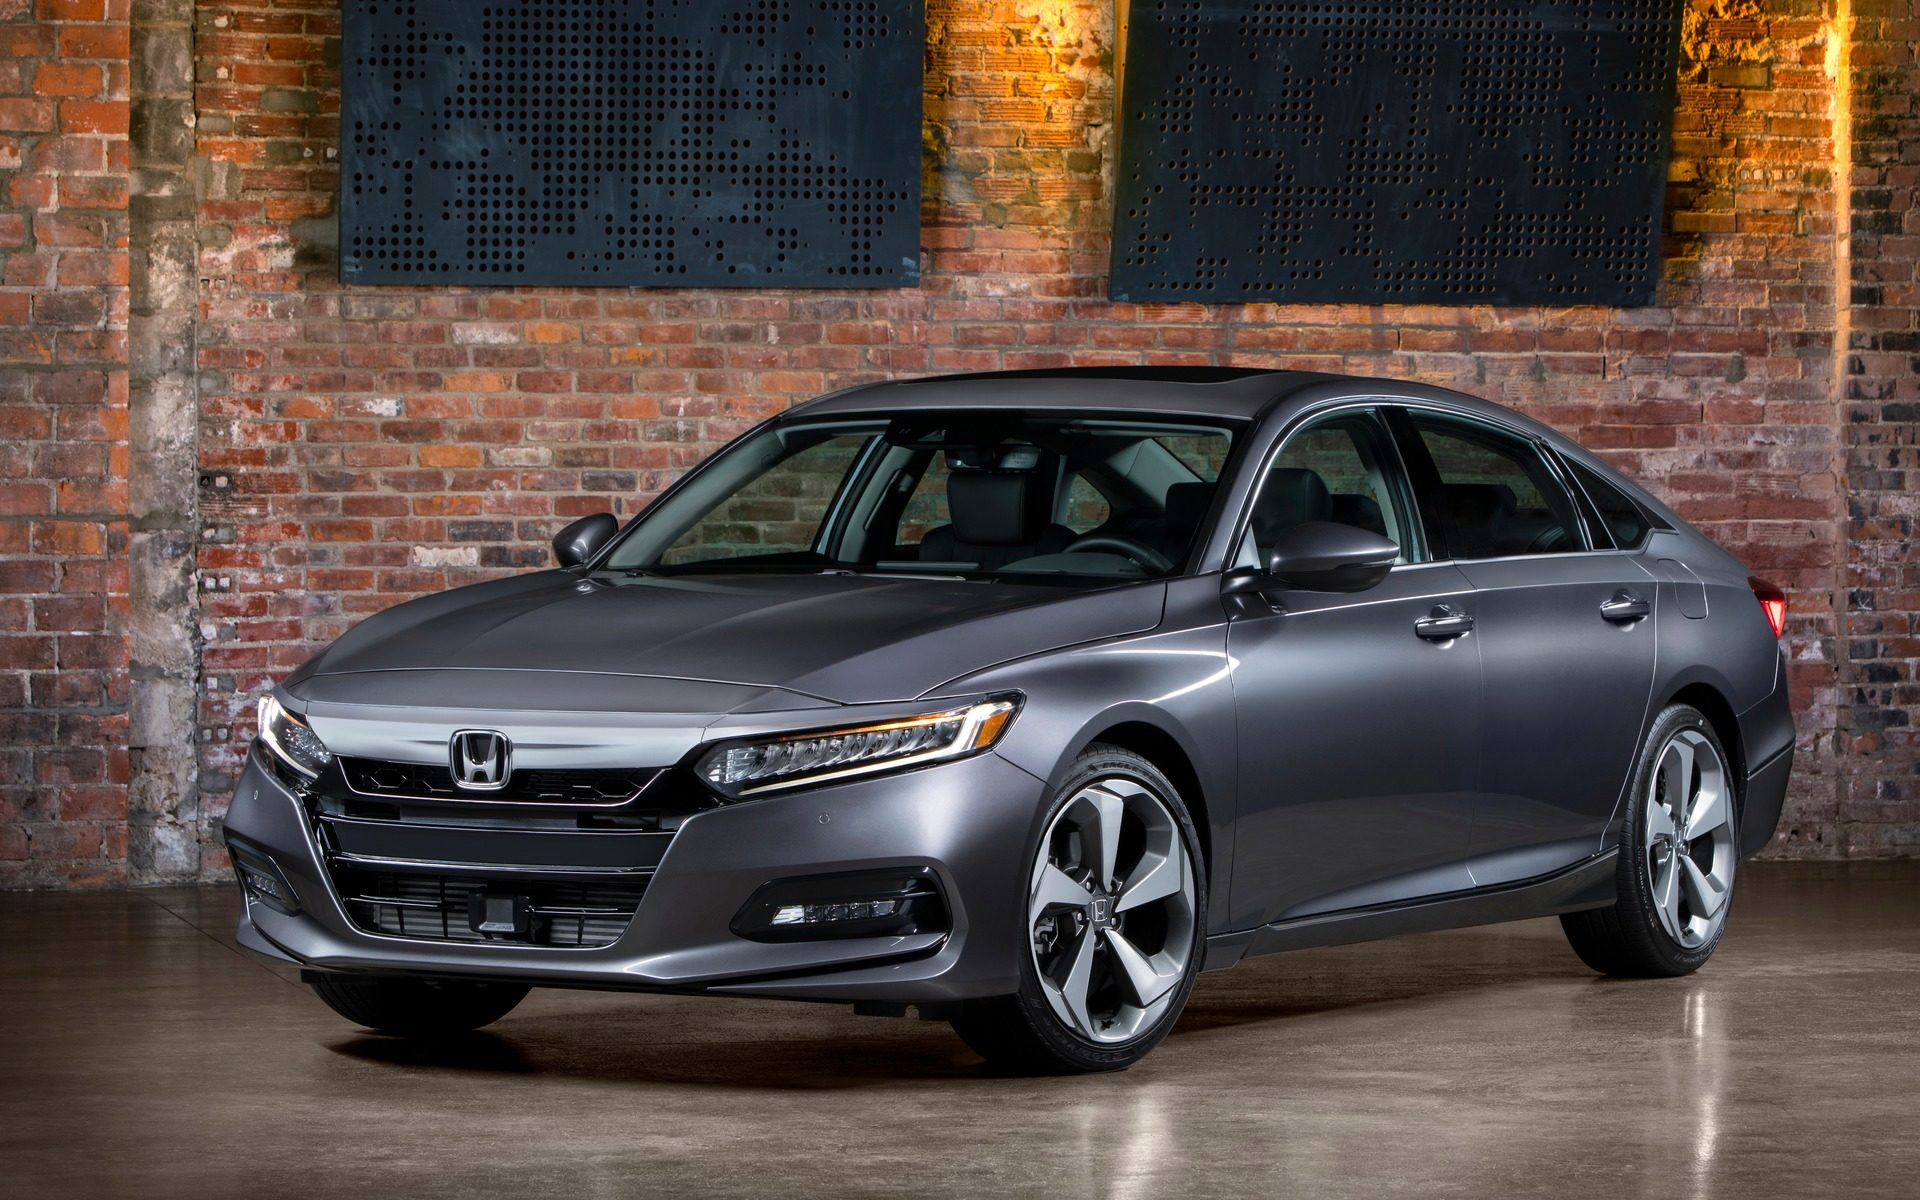 Best Selling Cars 2020.2020 Honda Accord At A Glance Motor Illustrated